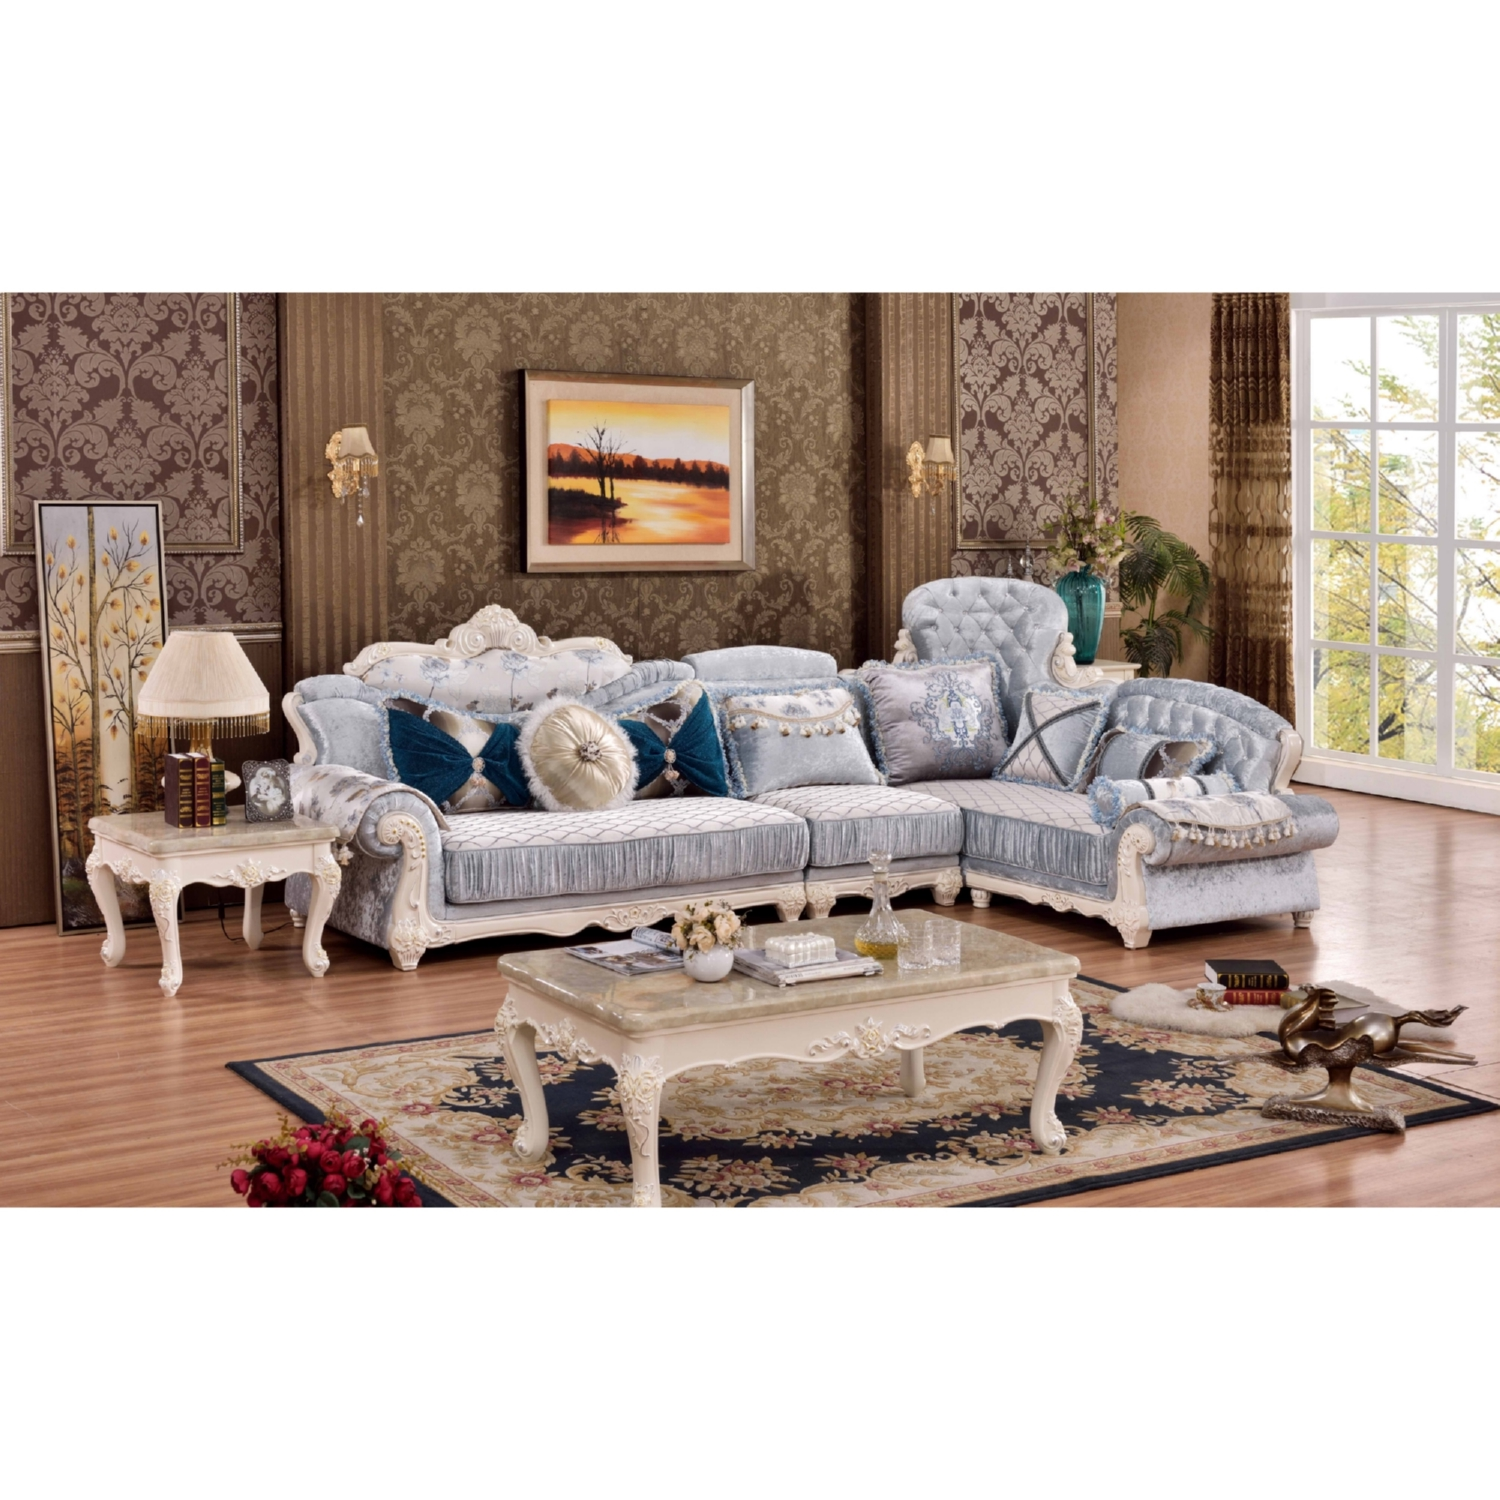 Meridian Furniture 694 Sectional Fabia 3 Piece Sectional Sofa in